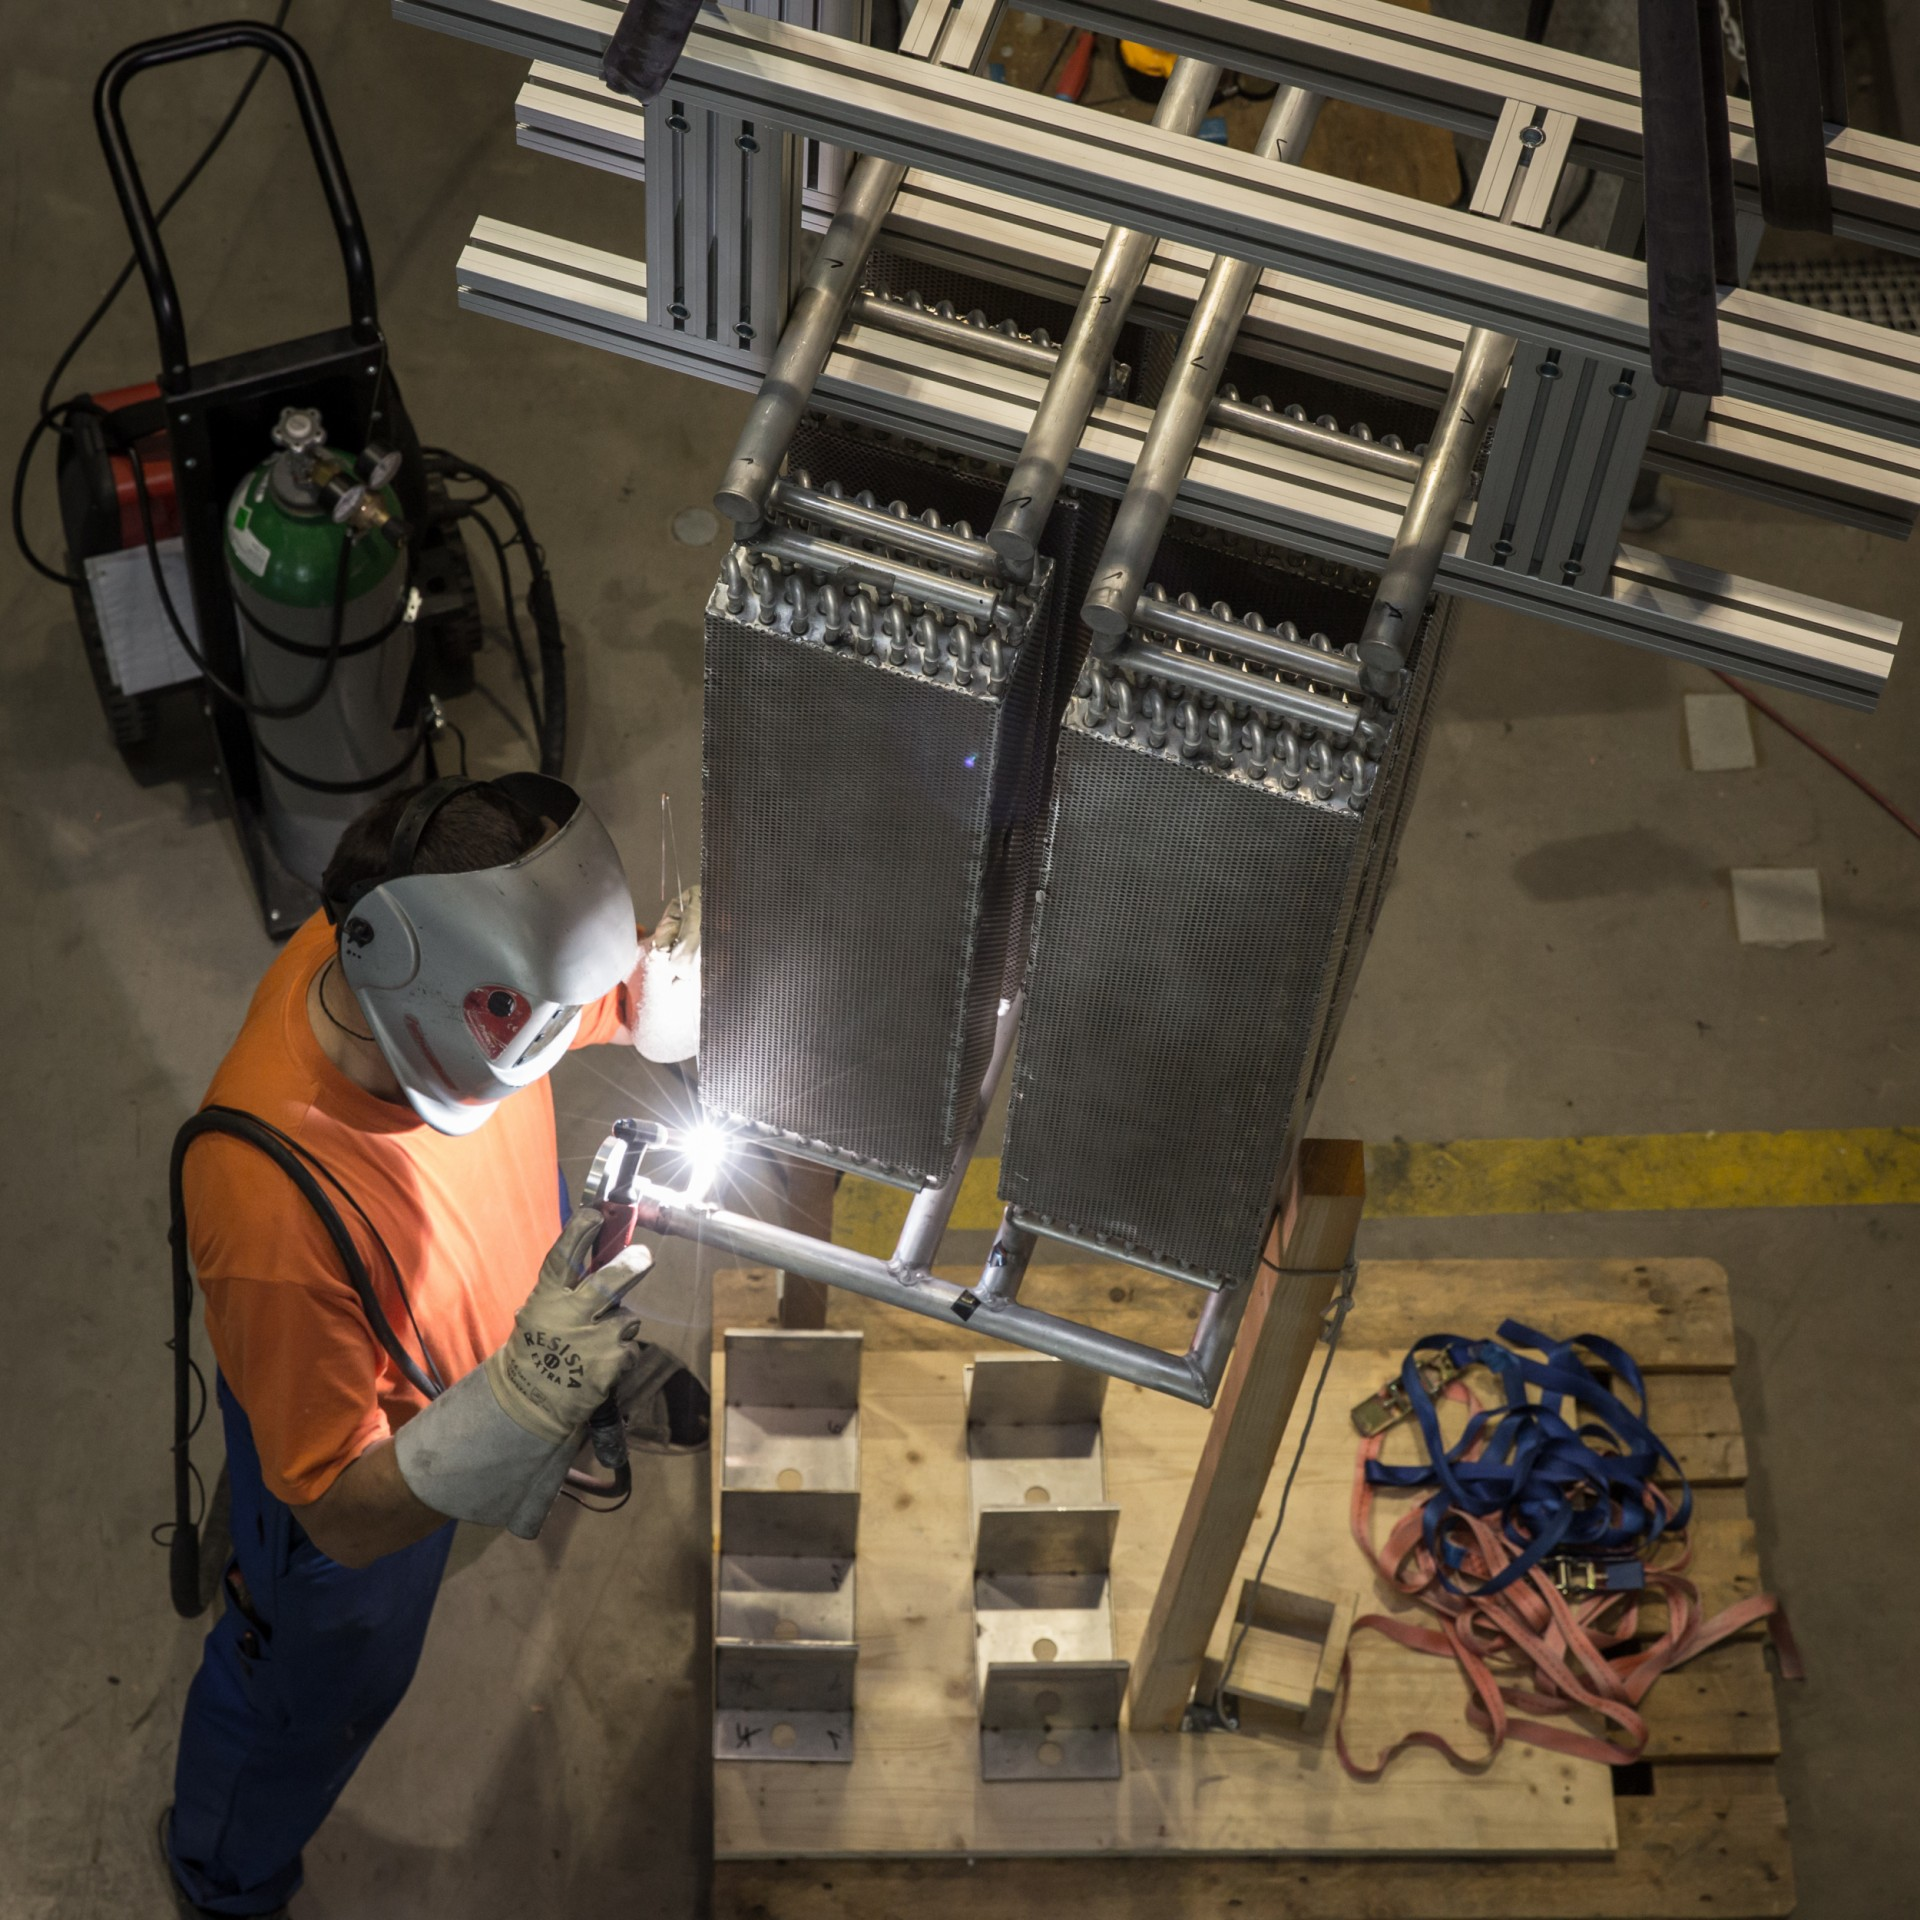 The new heat pump takes shape: Walter Camenisch from the University of Applied Sciences Rapperswil welds the heat exchanger elements together.